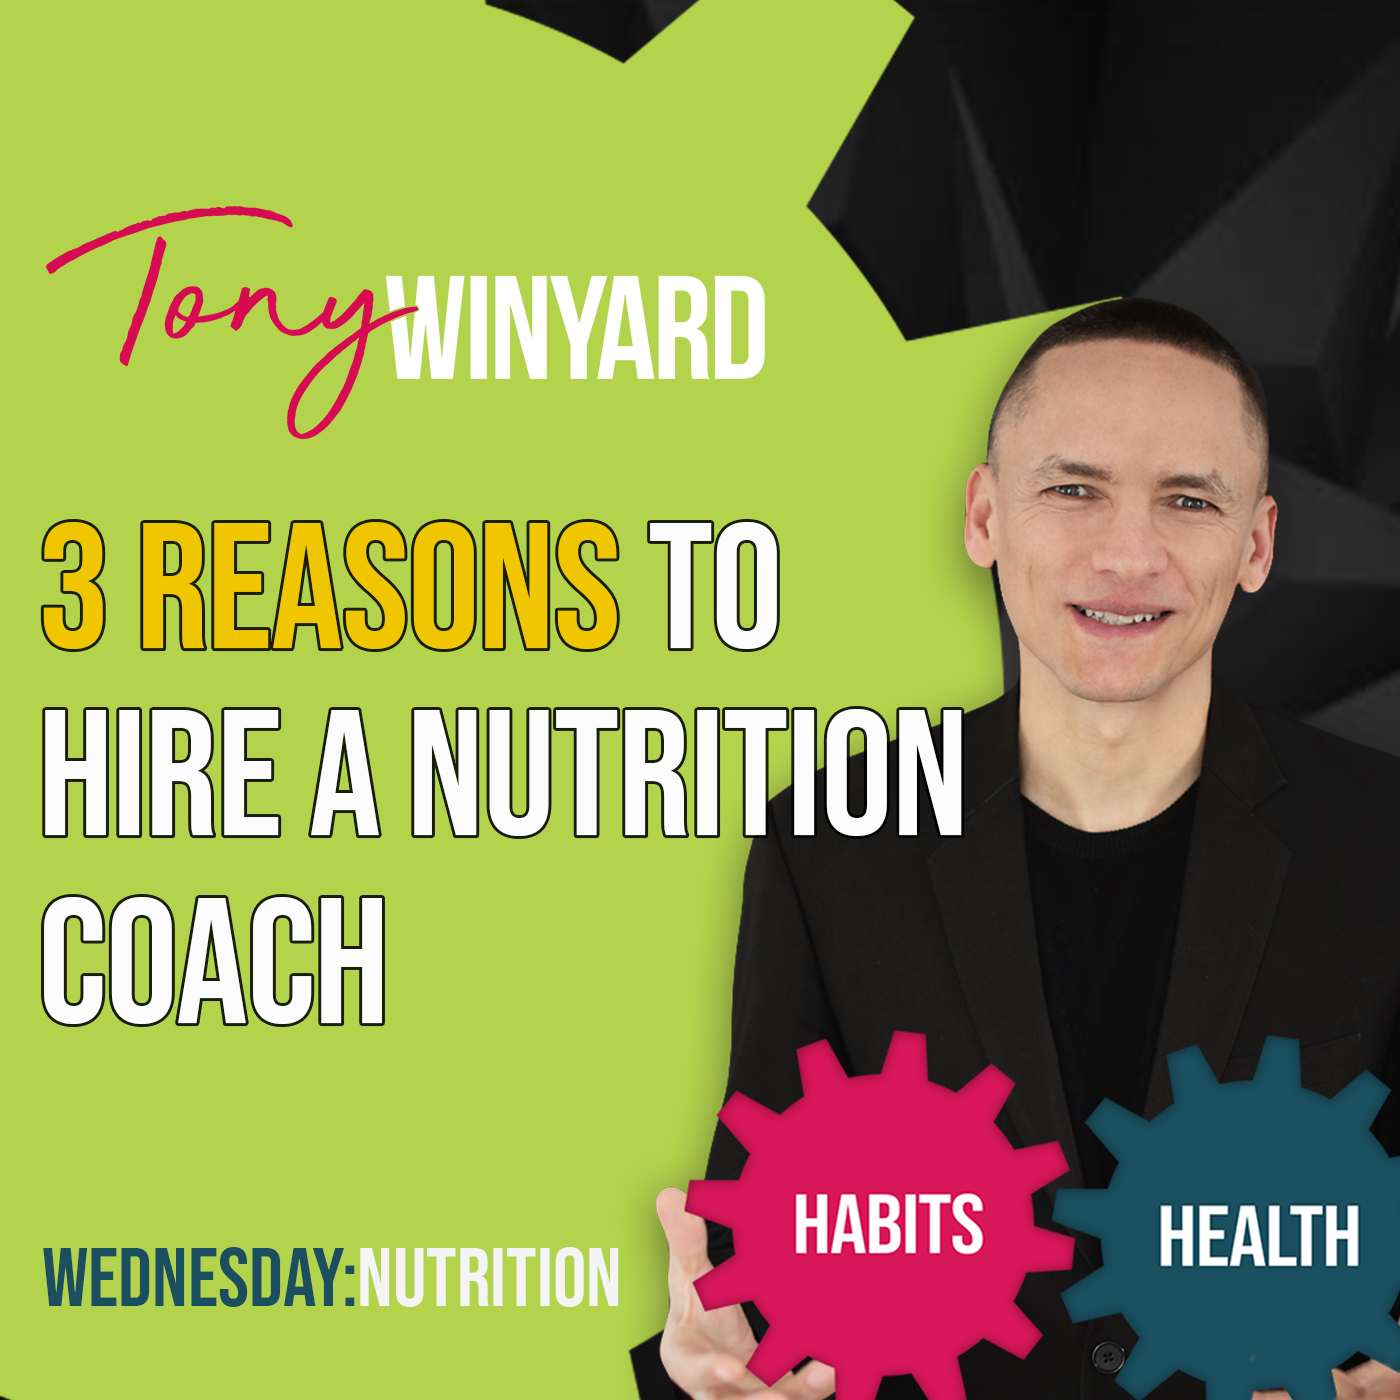 3 reasons to hire a nutrition coach